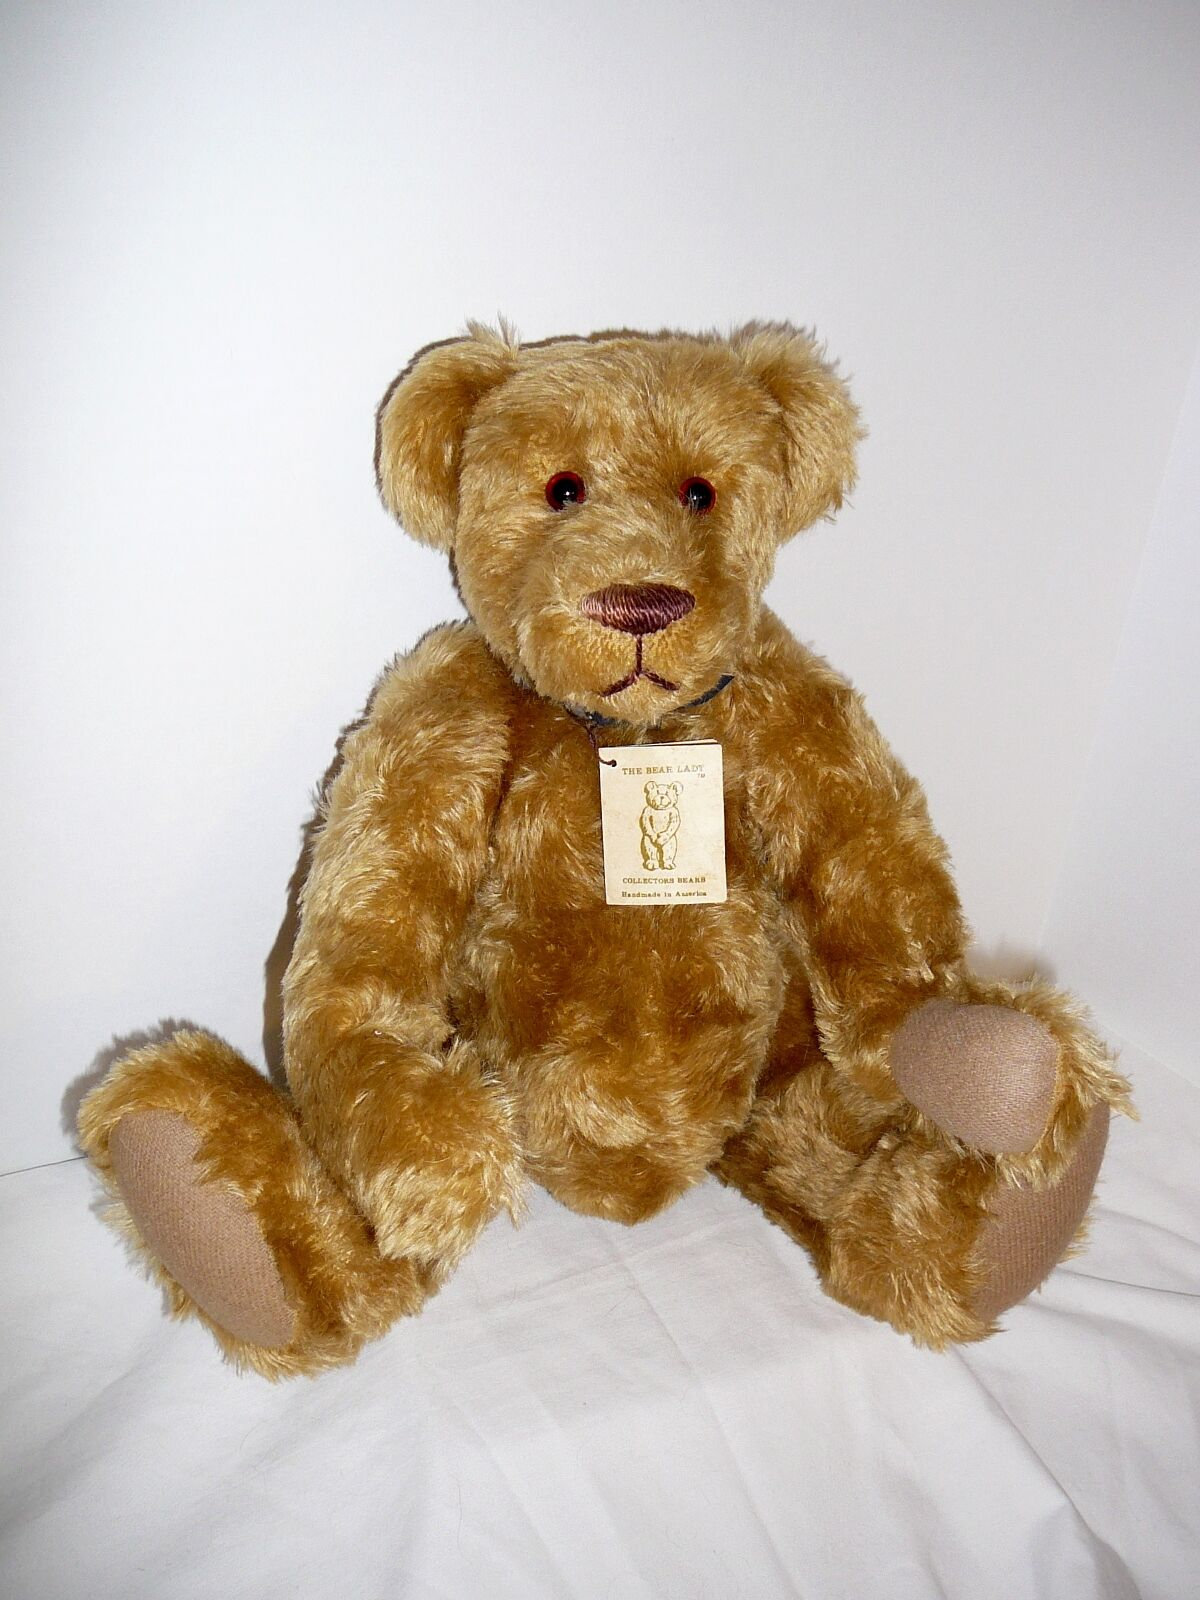 DUDLEY 17 1/2  Bear created by The Bear Lady OOAK designed by Monty Sours